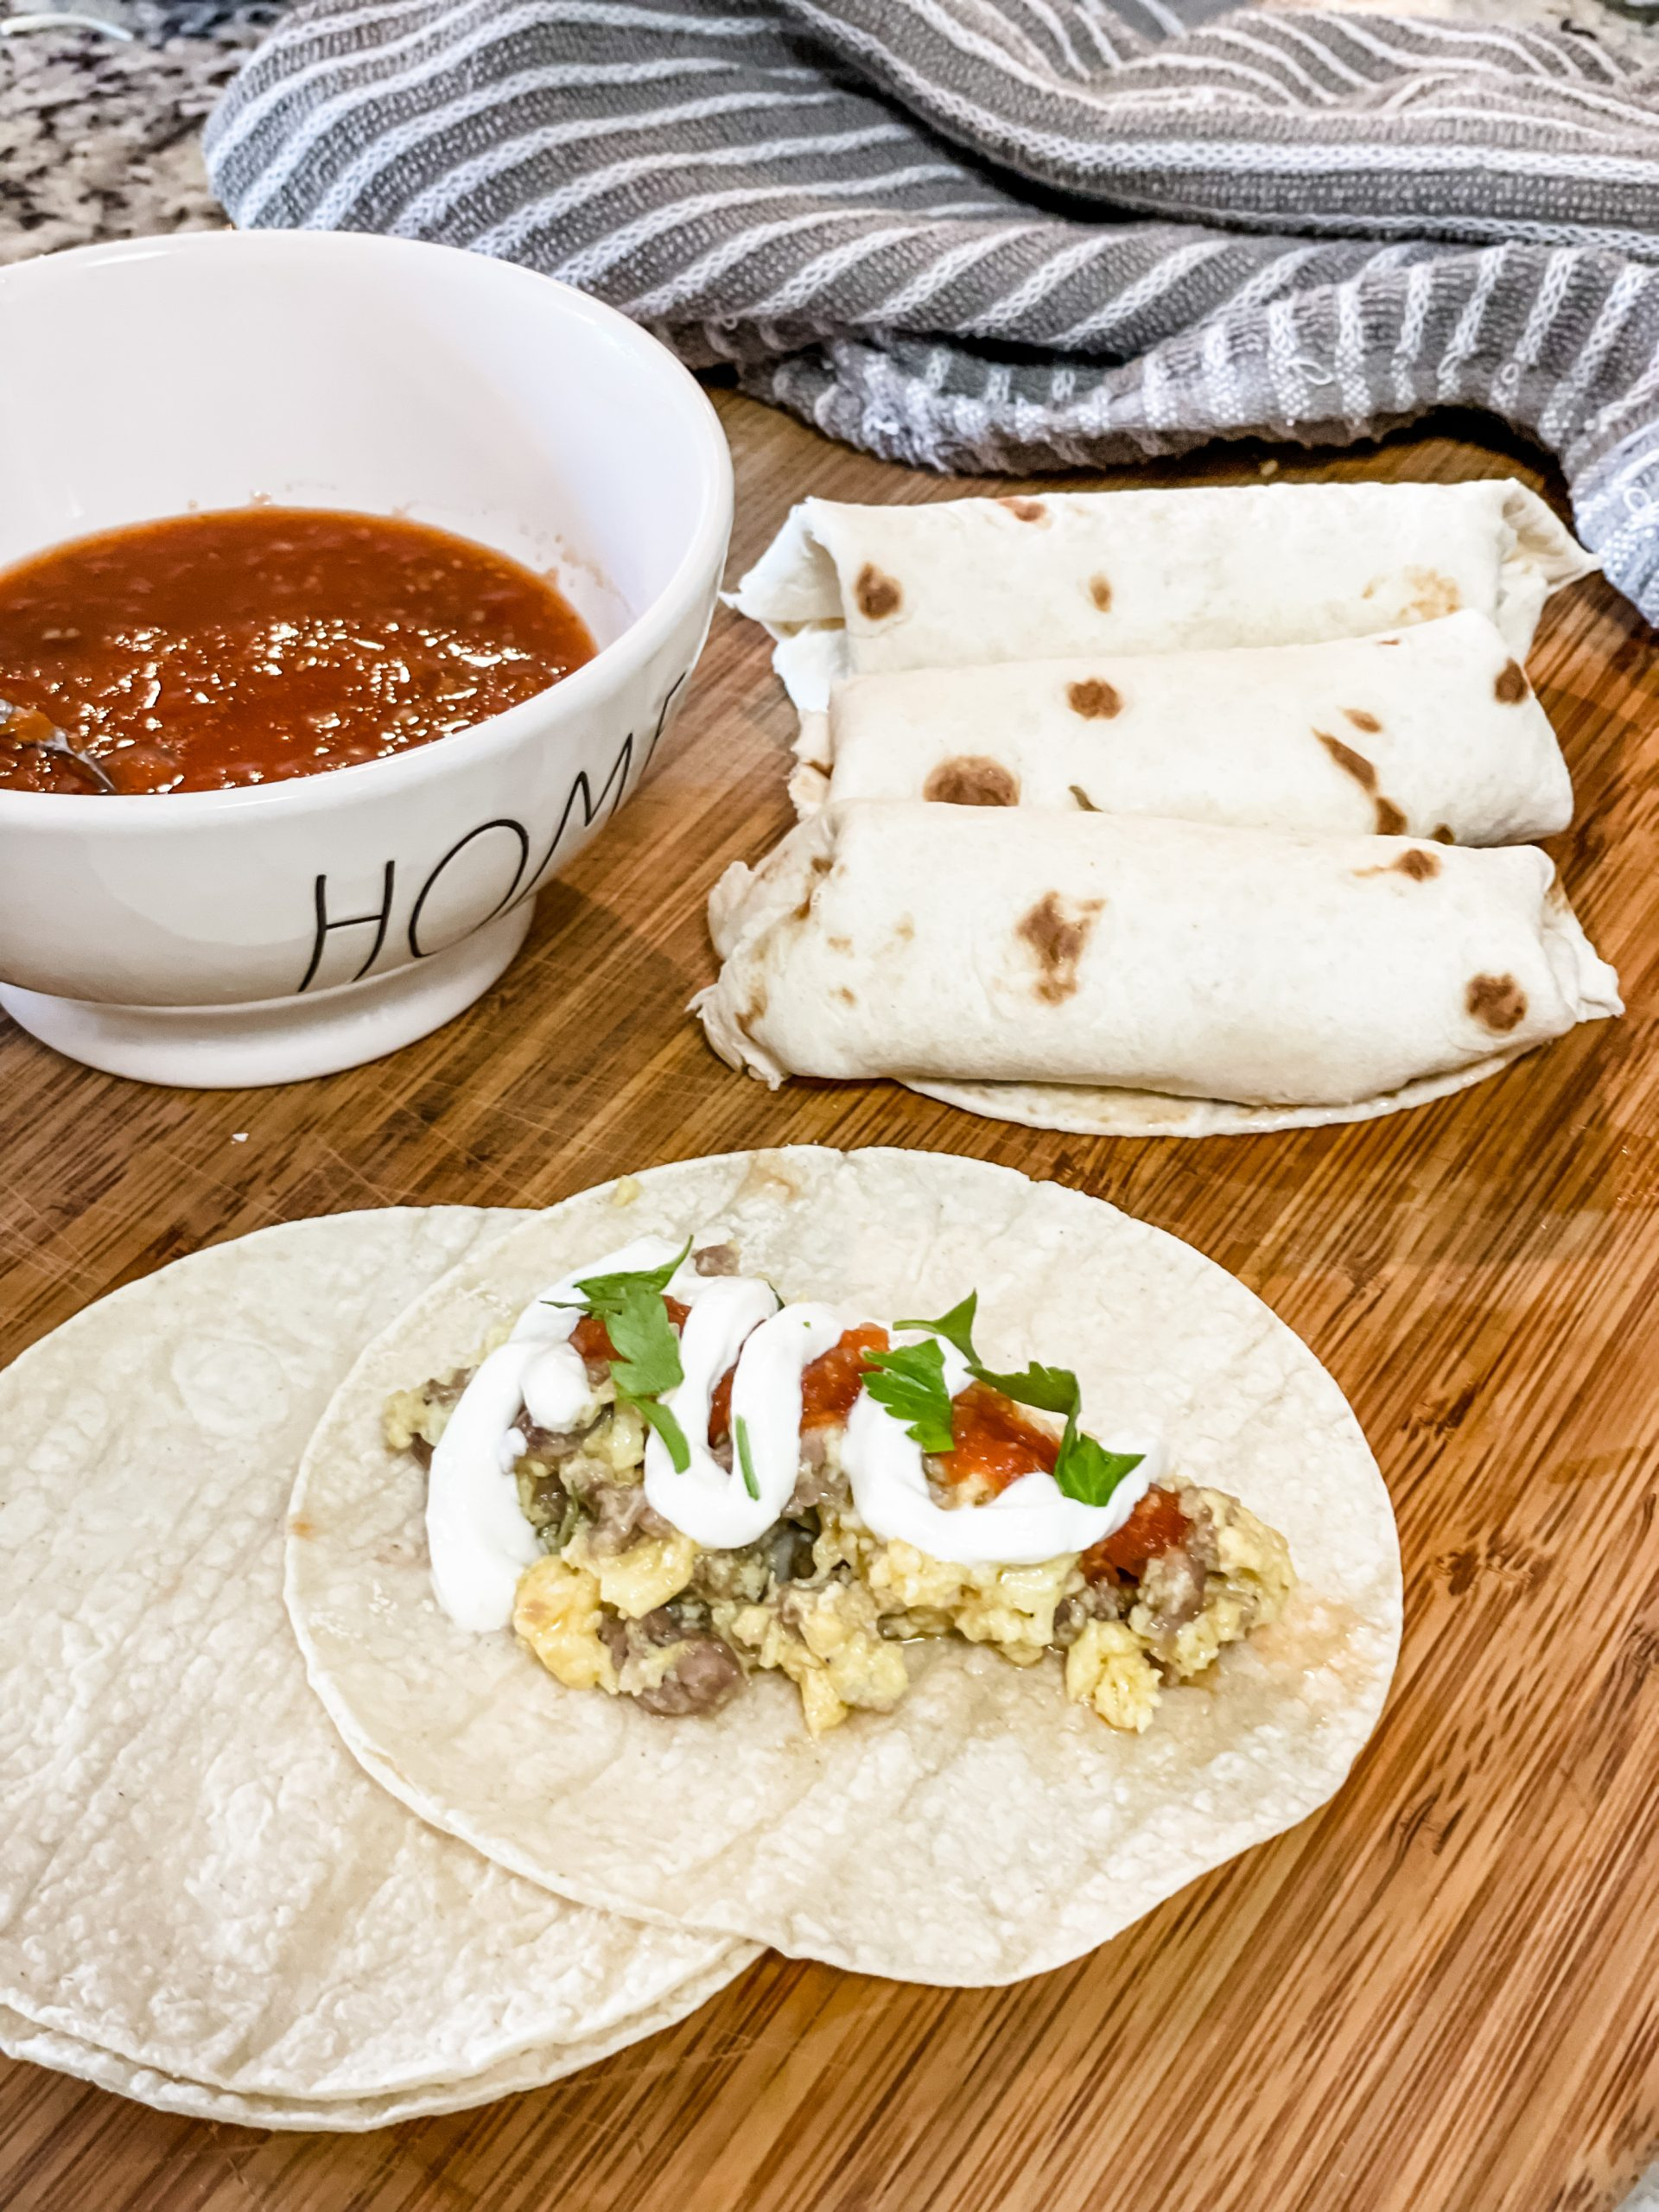 Sausage egg and cheese burrito topped with sour cream, salsa and cilantro on a wood cutting board